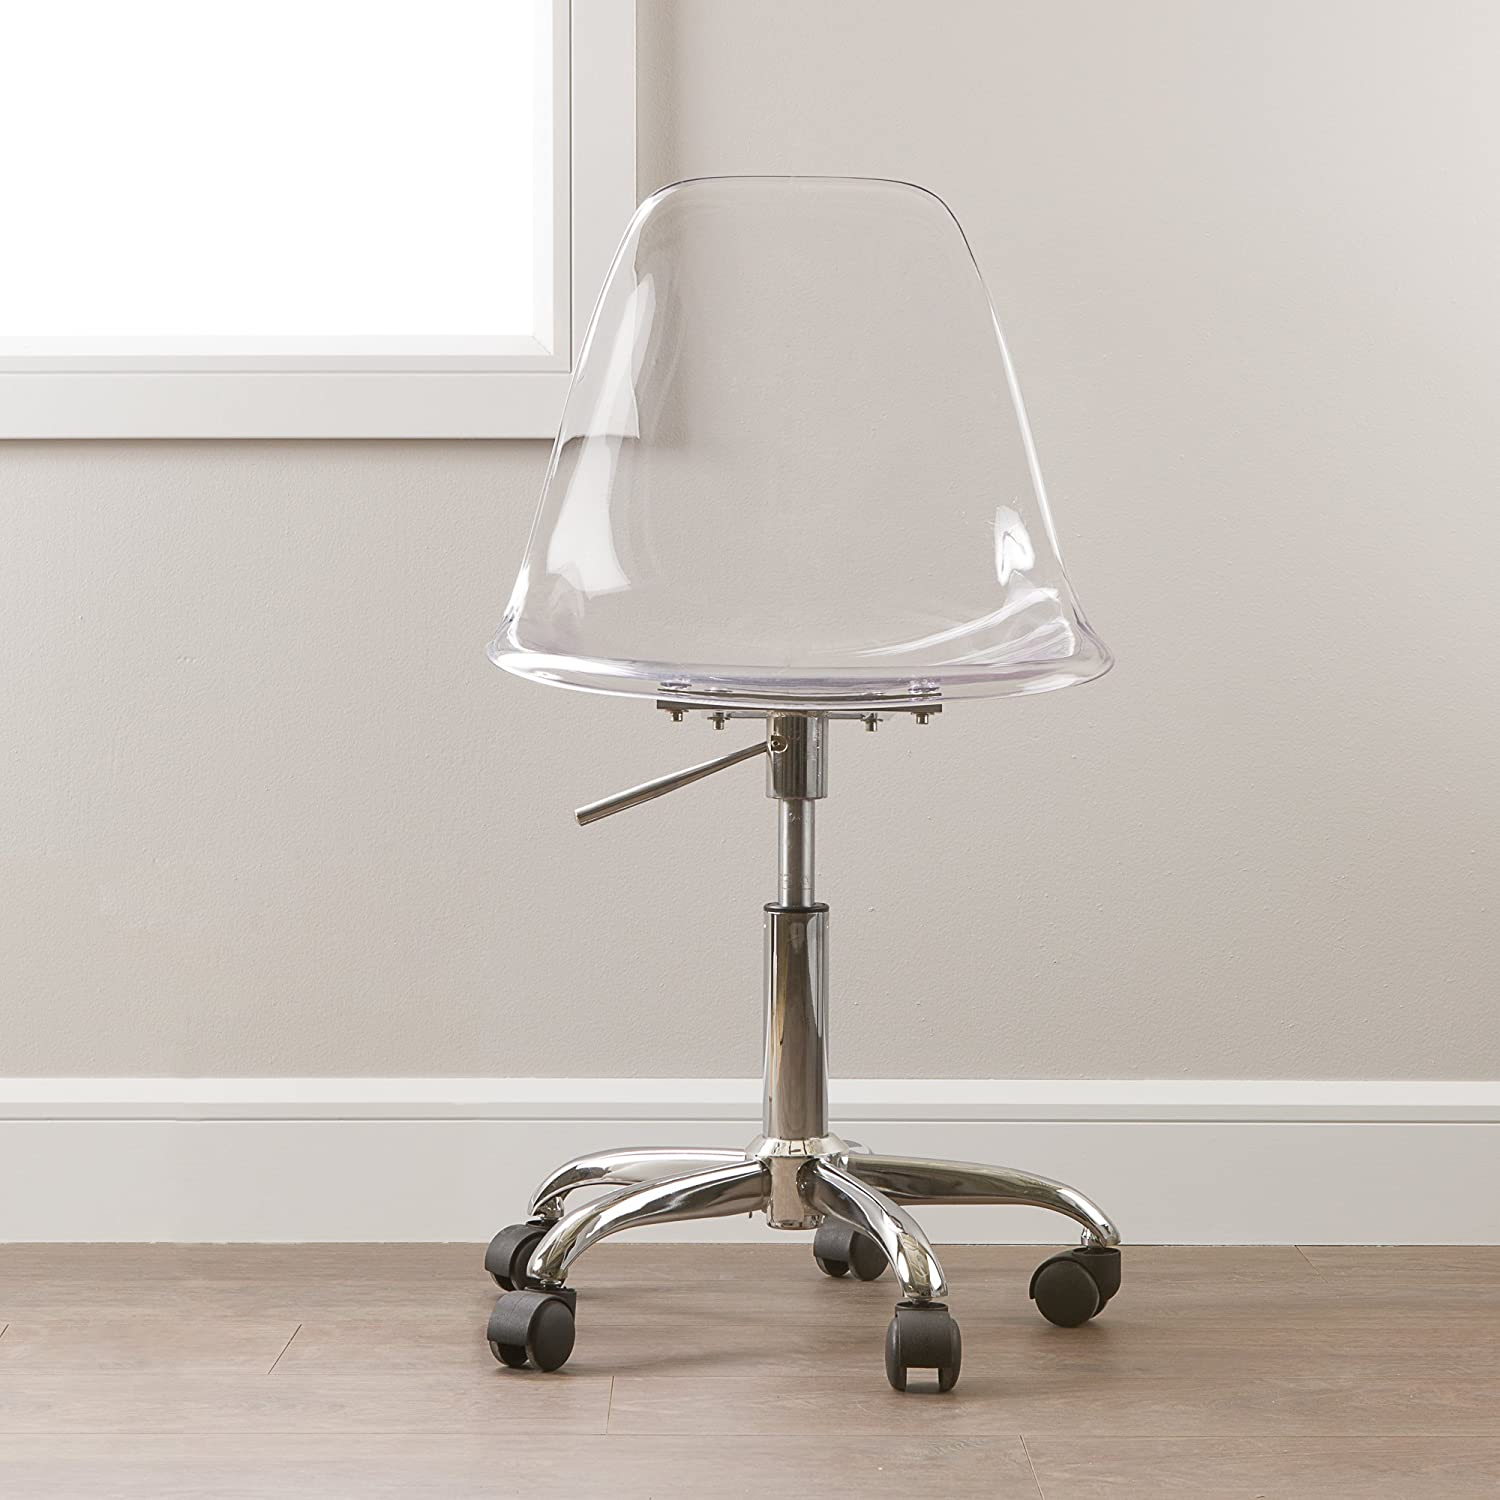 cheap office chairs amazon. Amazon.com: South Shore Clear Acrylic Office Chair With Wheels: Kitchen \u0026 Dining Cheap Chairs Amazon C